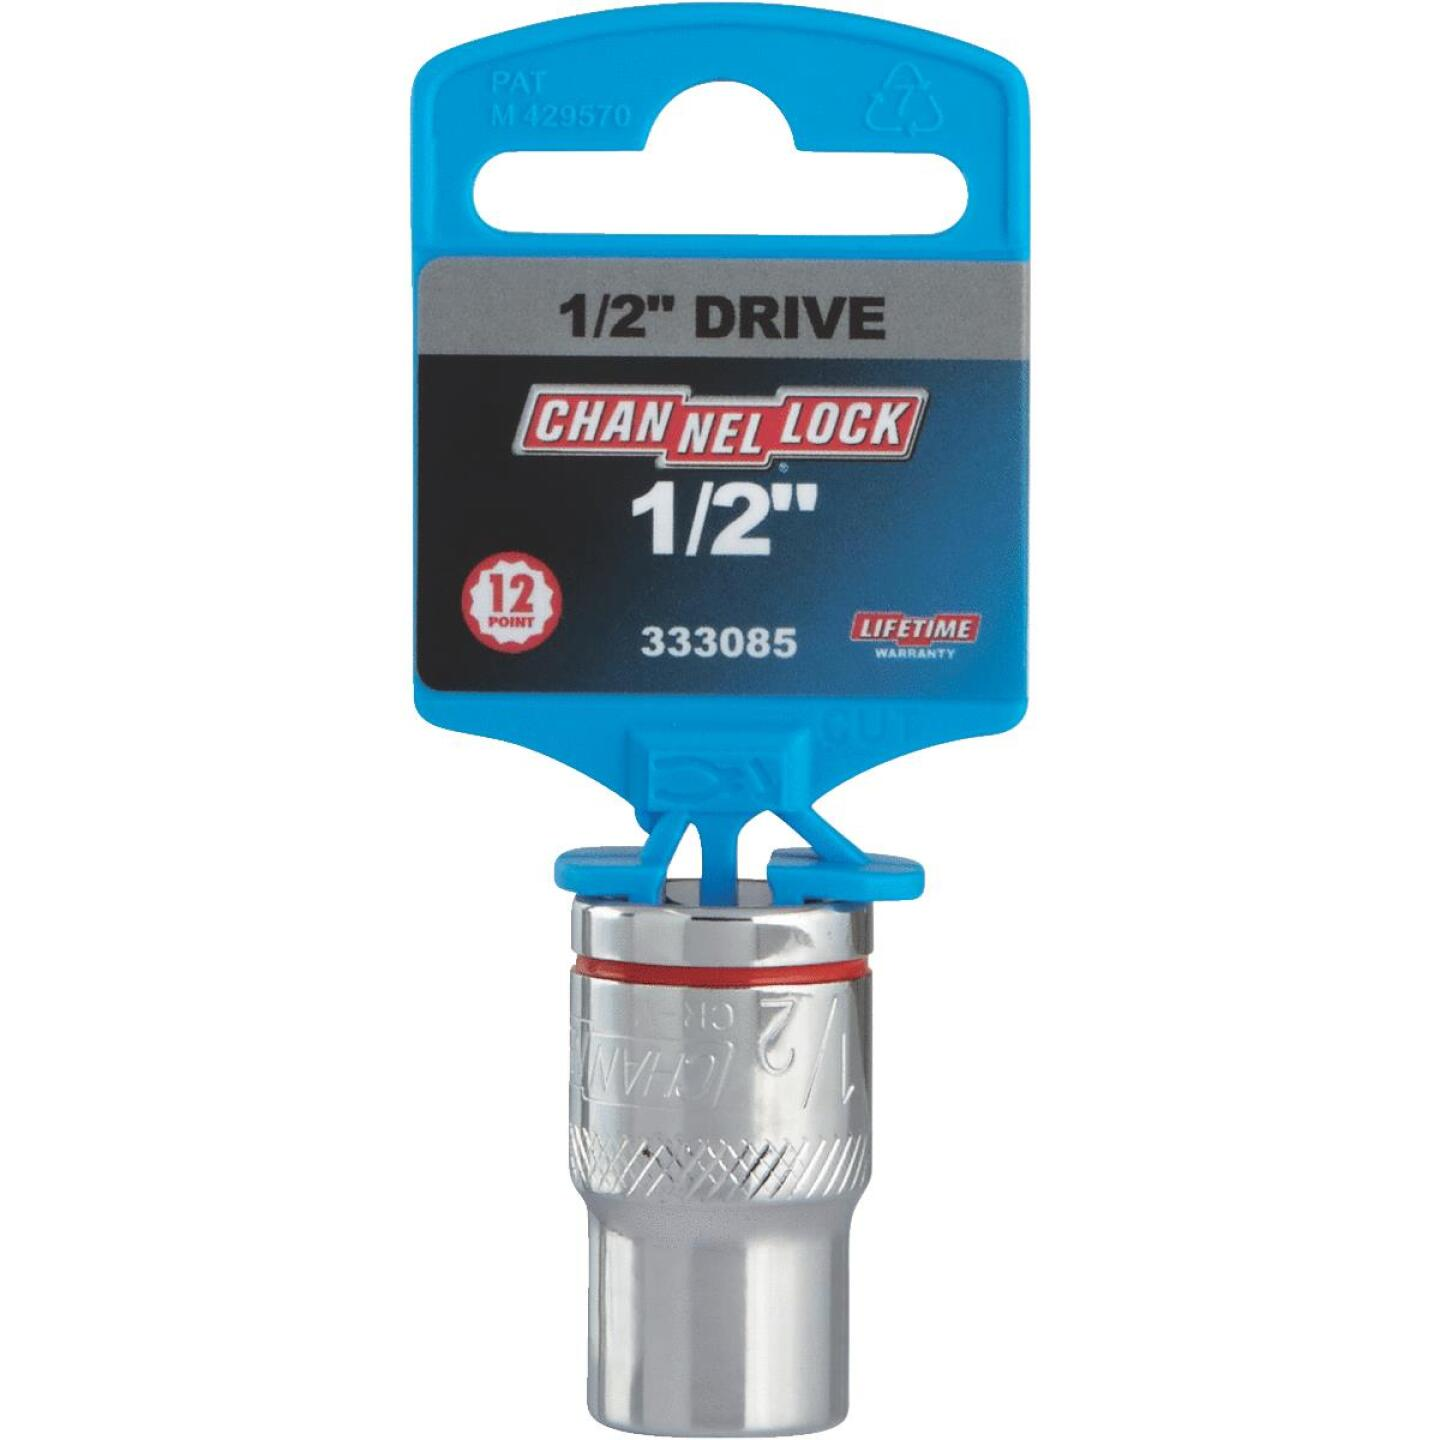 Channellock 1/2 In. Drive 1/2 In. 12-Point Shallow Standard Socket Image 2